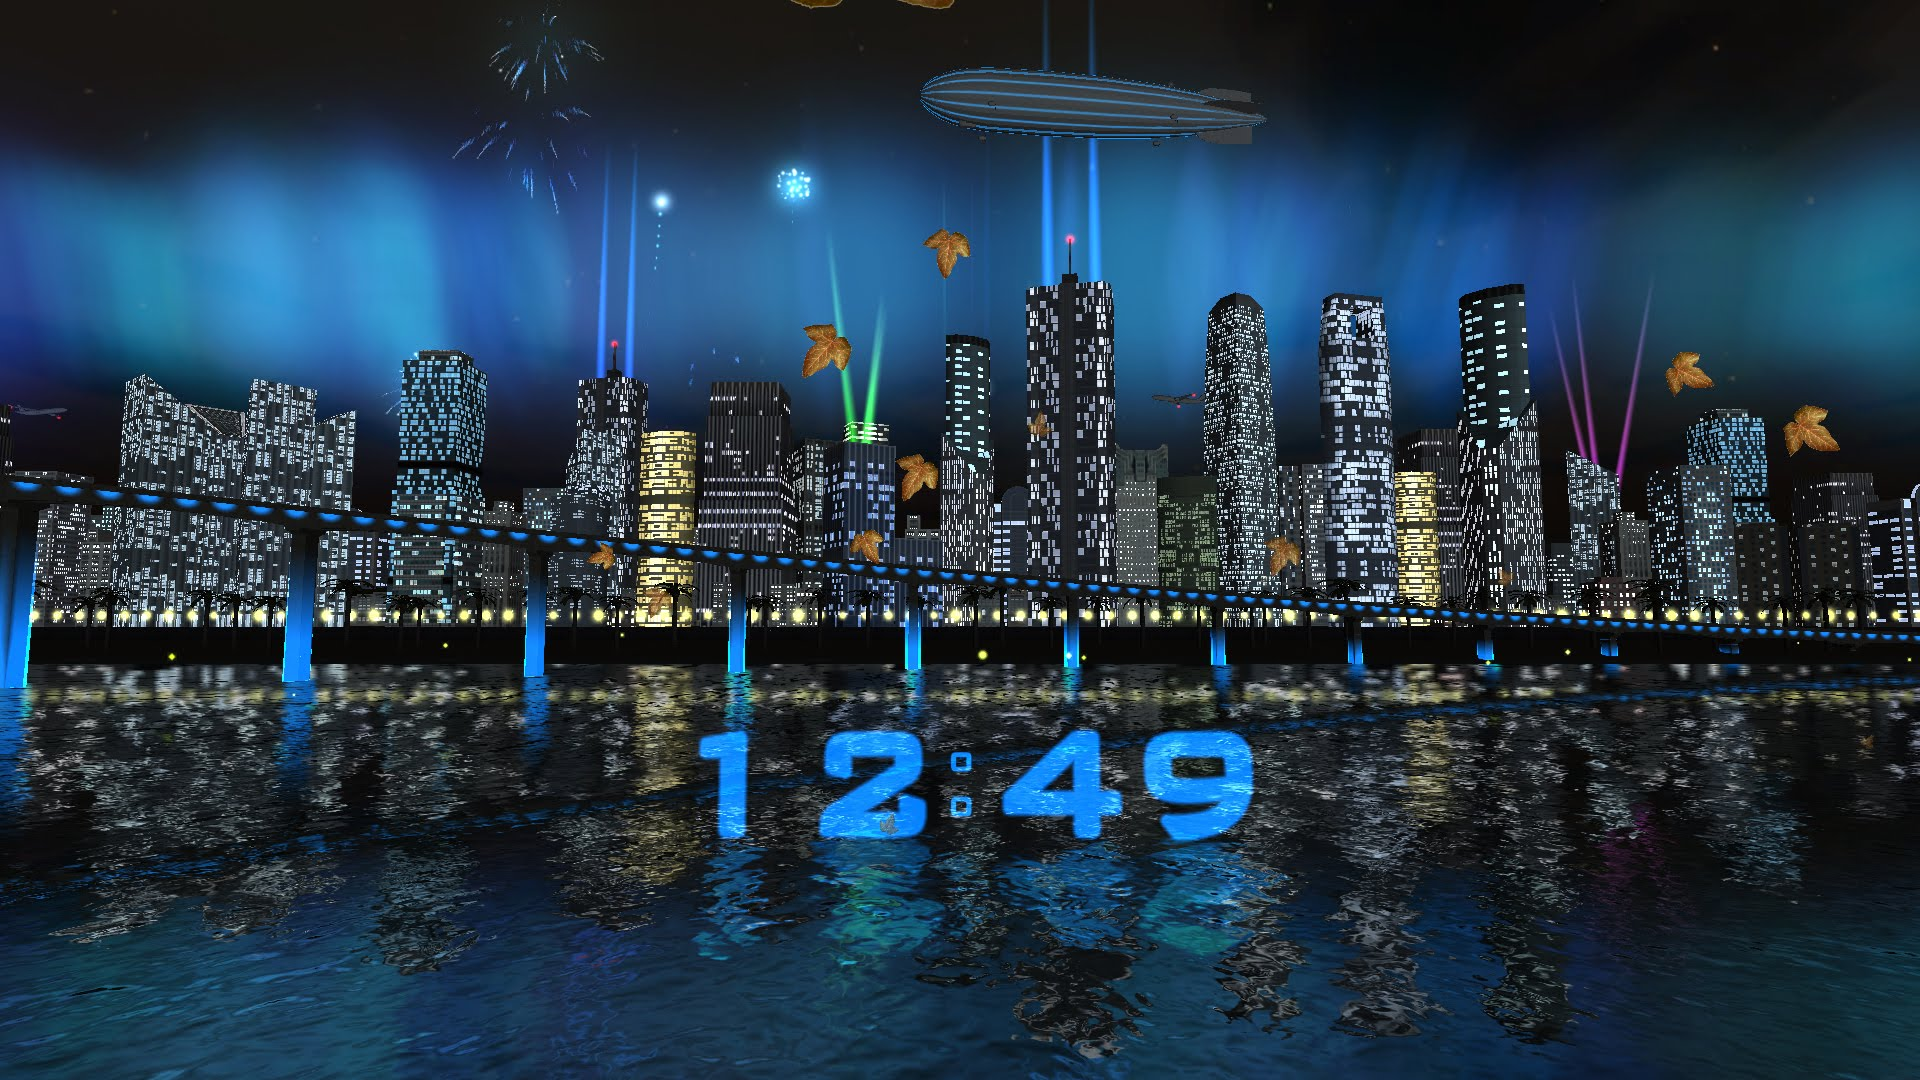 Image Result For Active Backgrounds New Live Moving Wallpapers In Hd For Desktop